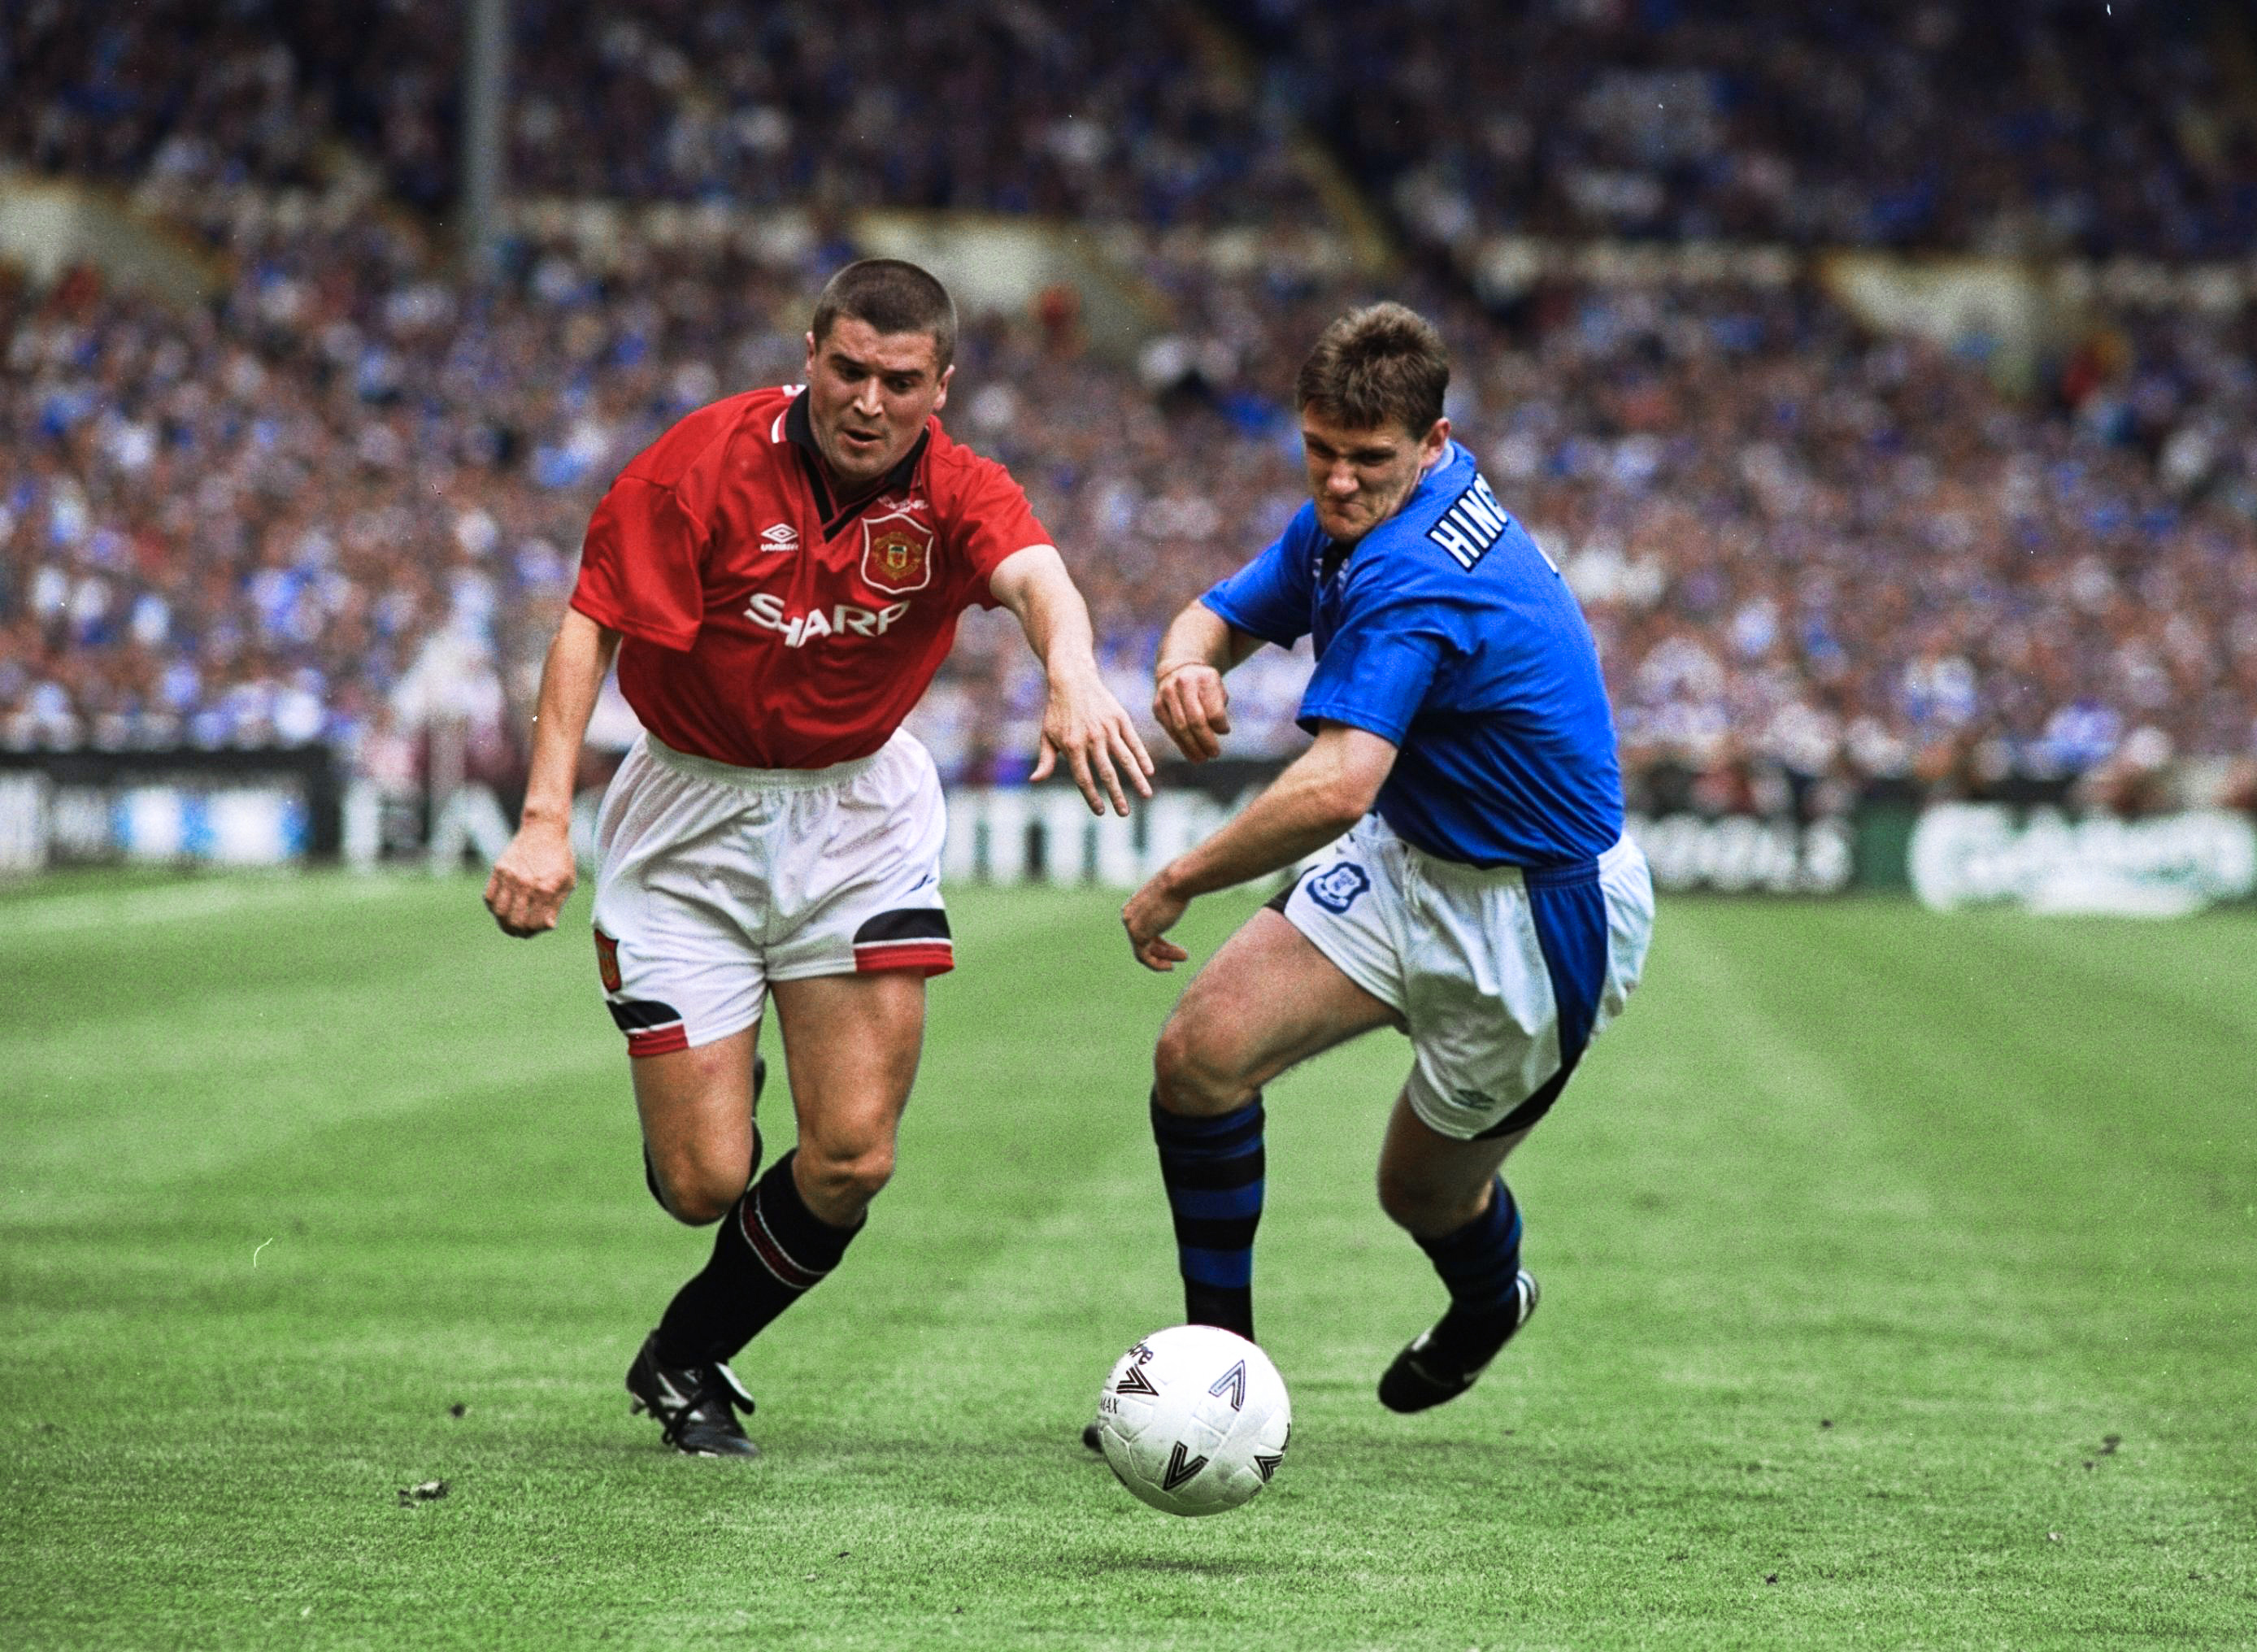 How Everton S Glorious 1995 Fa Cup Win Over Manchester United Changed The Course For Both Clubs